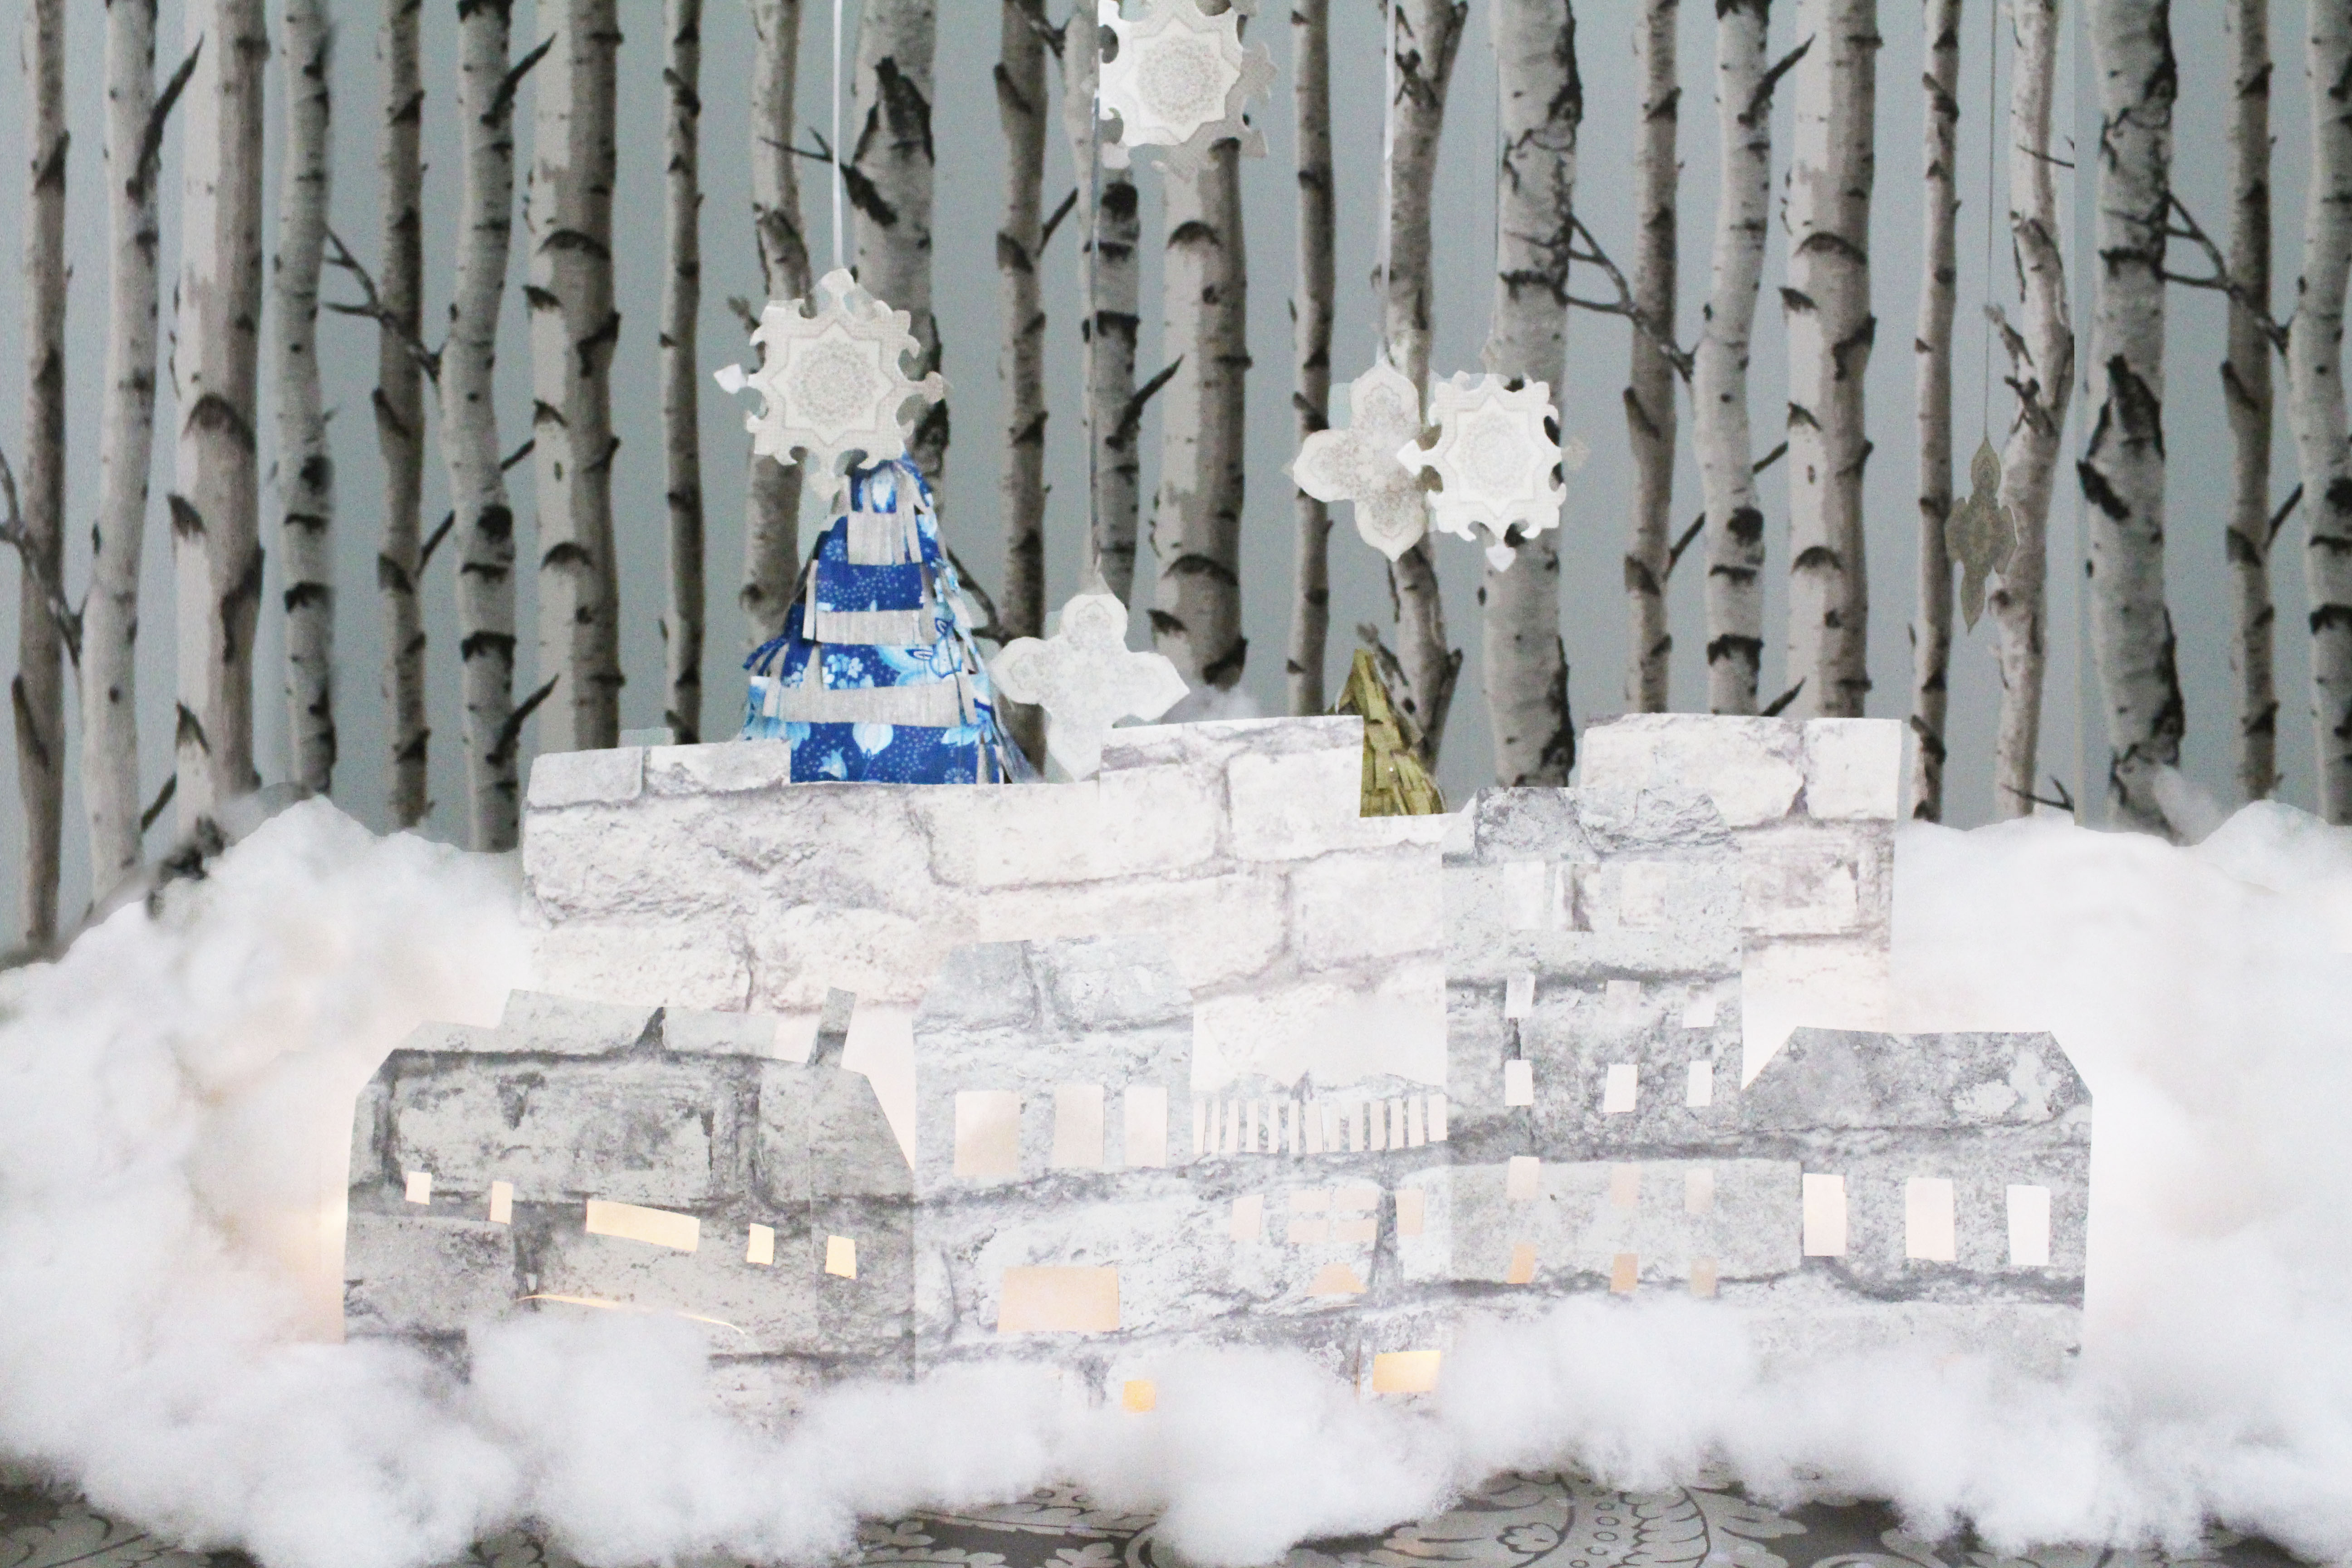 DIY Snowy Holiday Decor